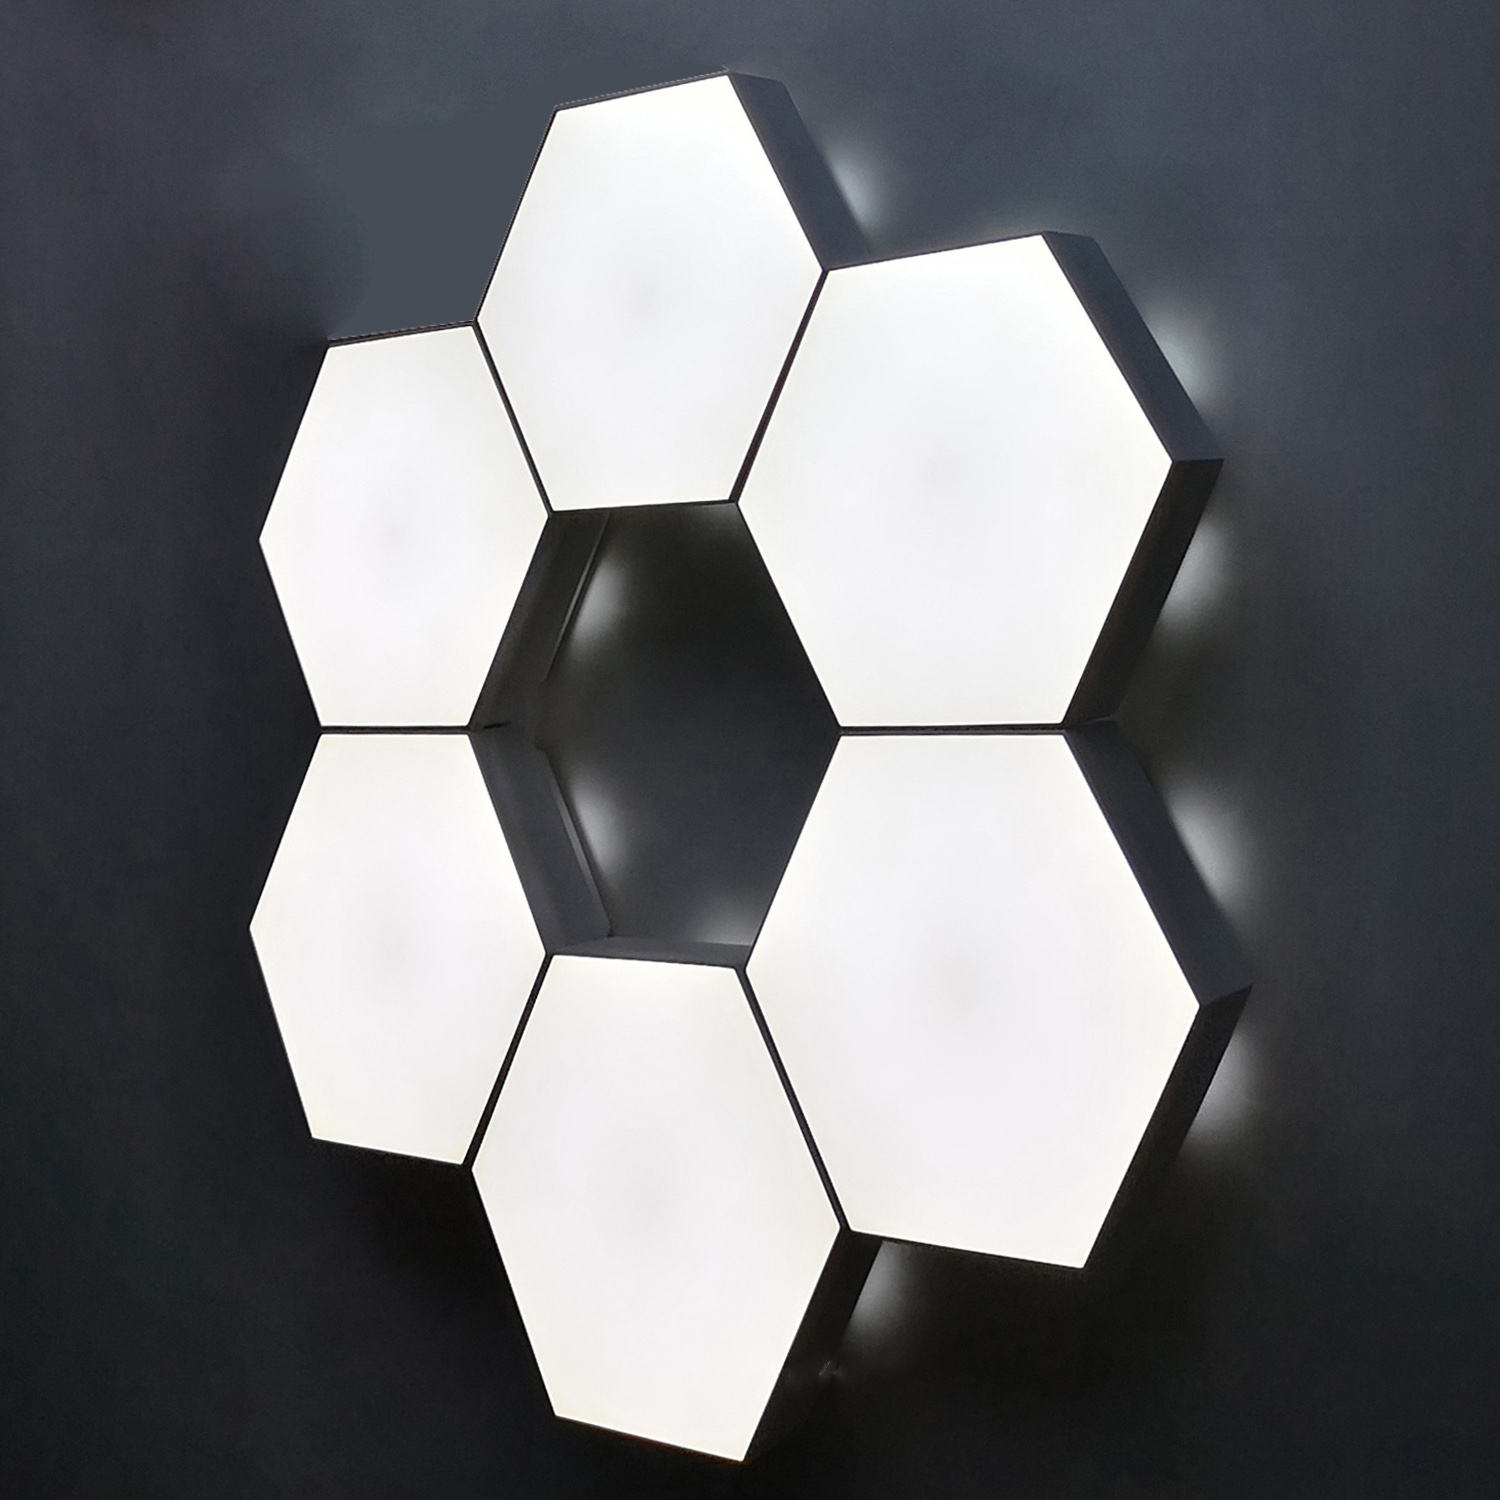 6PCS Quantum Honeycomb Mosaic Color Version Hexagonal Modular Touch Sensitive Lighting Wall Lamp LED Night Light